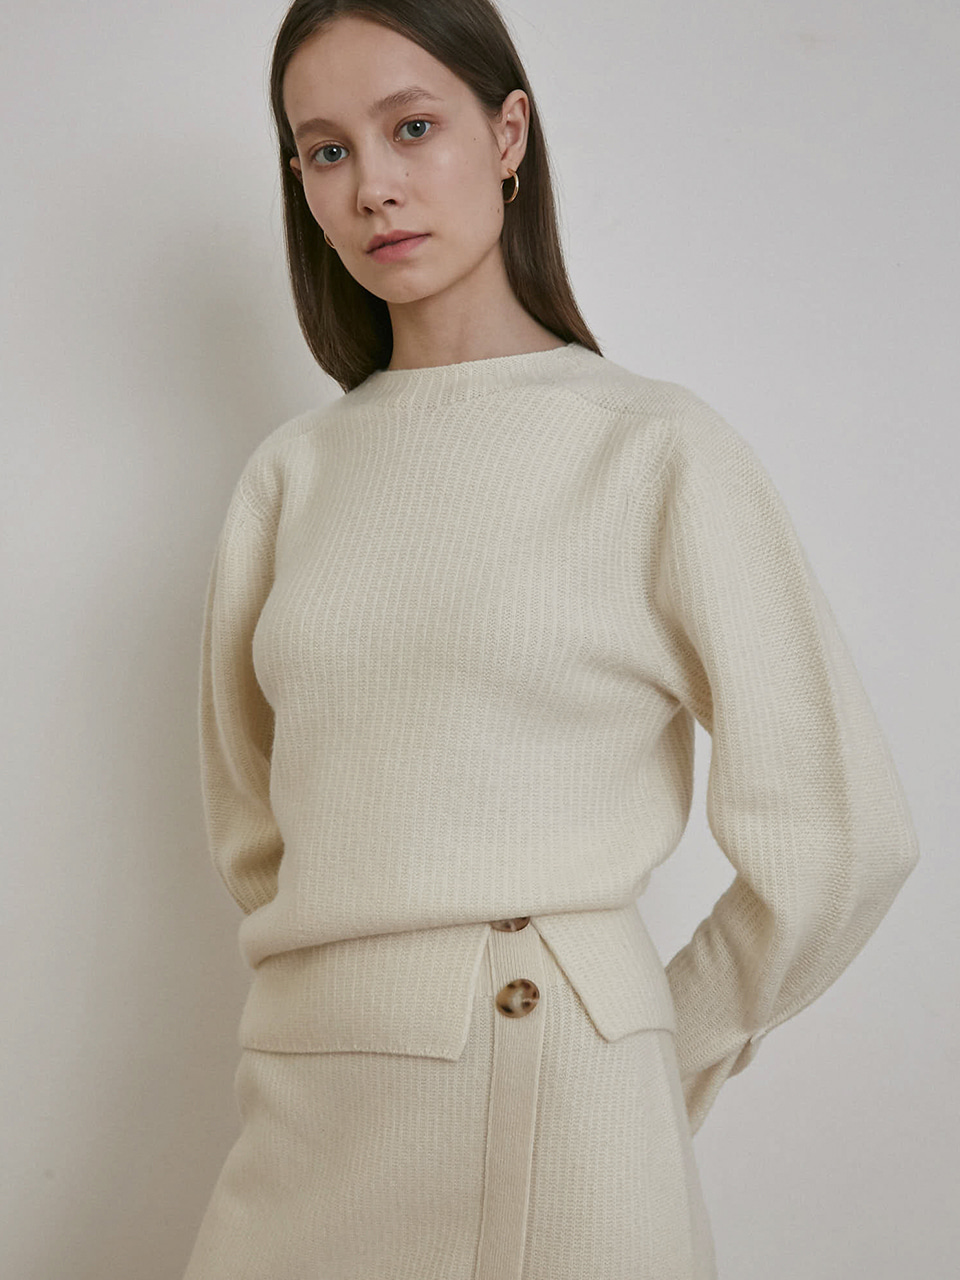 CASHMERE SLIT DETAILED KNIT TOP [BLACK][IVORY]